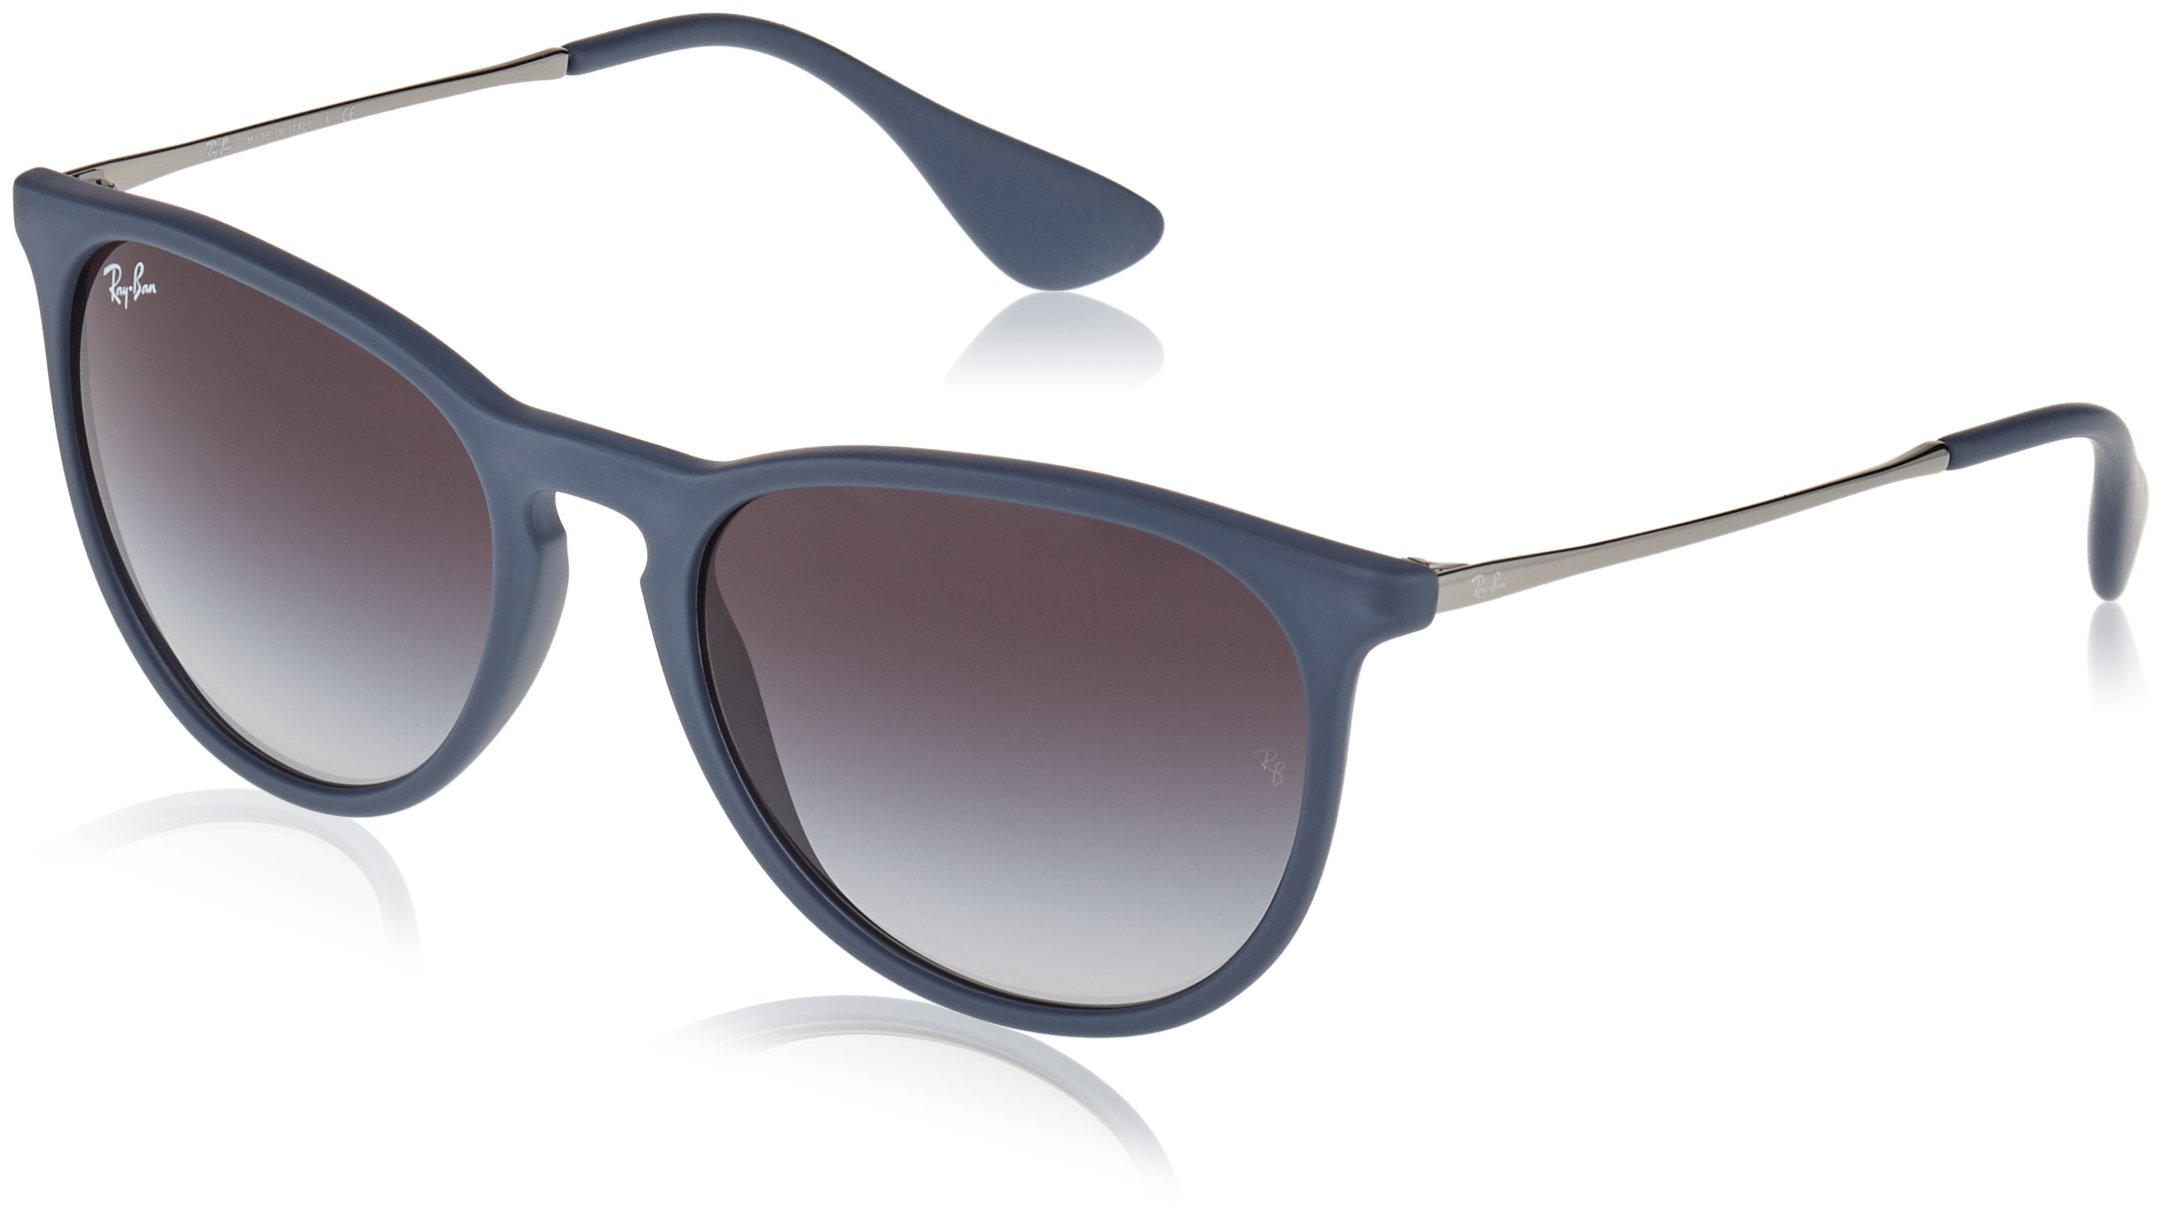 Ray-Ban ERIKA - RUBBER BLUE Frame GREY GRADIENT Lenses 54mm Non-Polarized by Ray-Ban